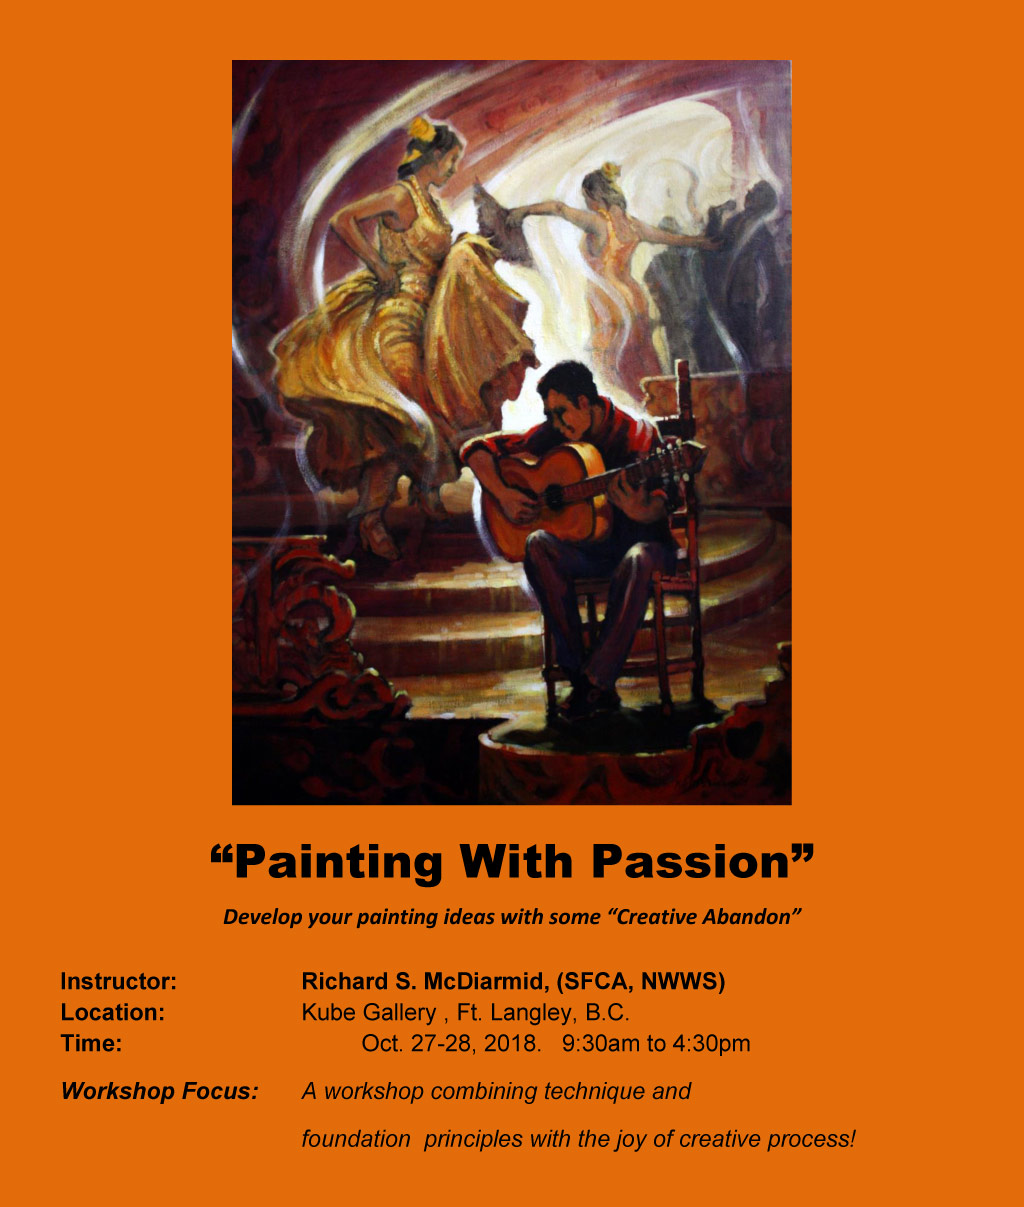 Painting with Passions